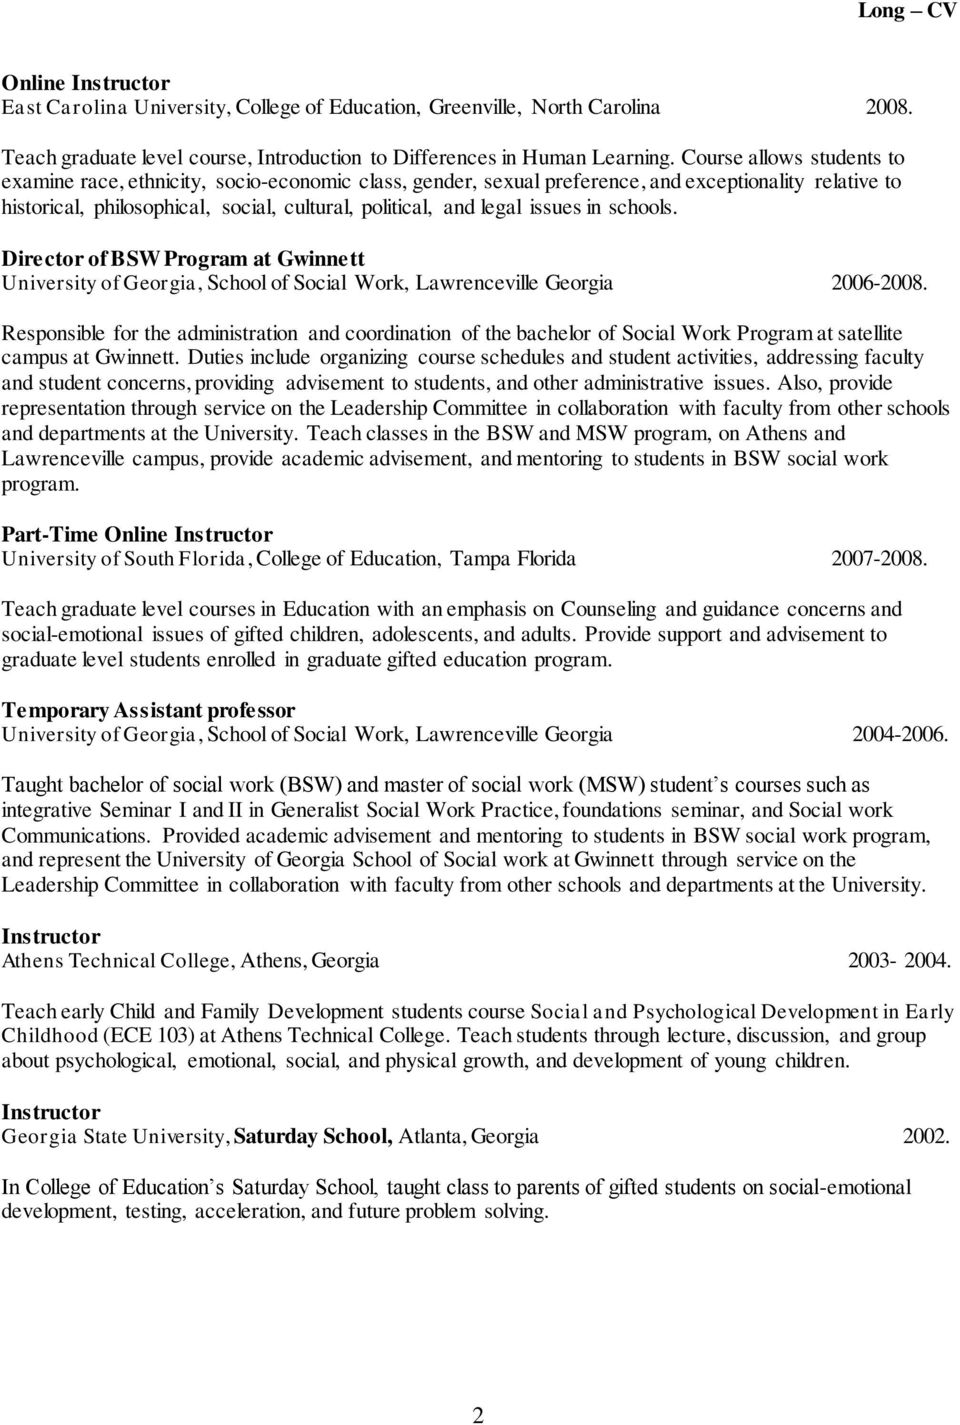 issues in schools. Director of BSW Program at Gwinnett University of Georgia, School of Social Work, Lawrenceville Georgia 2006-2008.